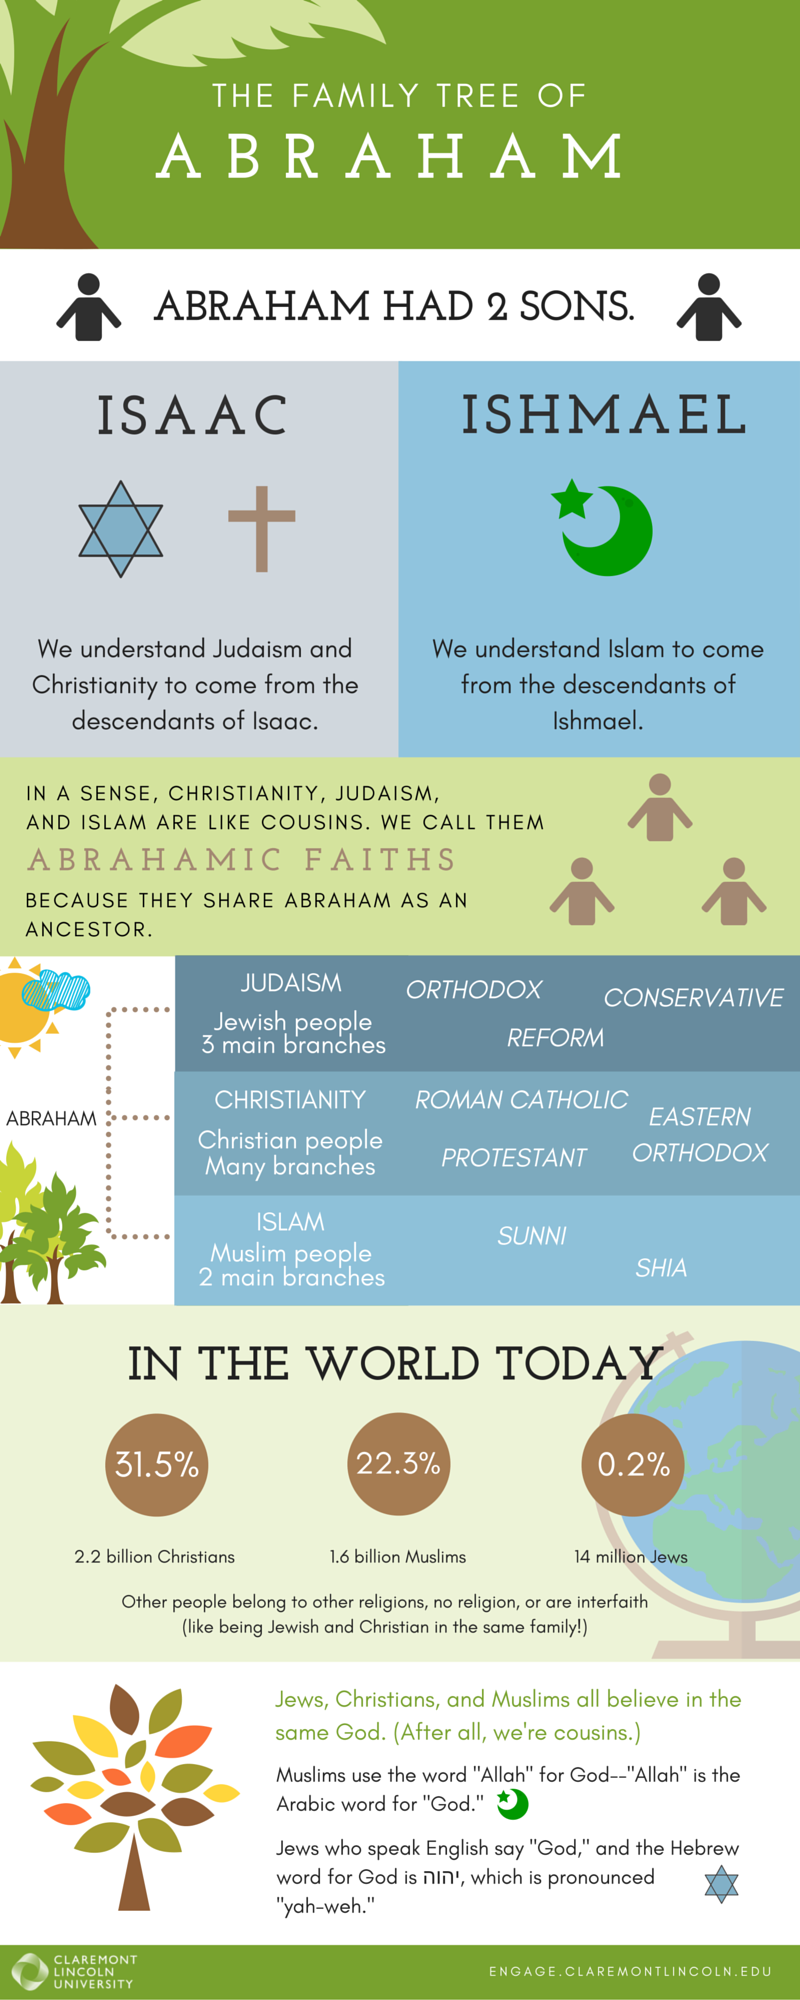 The Family Tree of Abraham - Interfaith Infographic